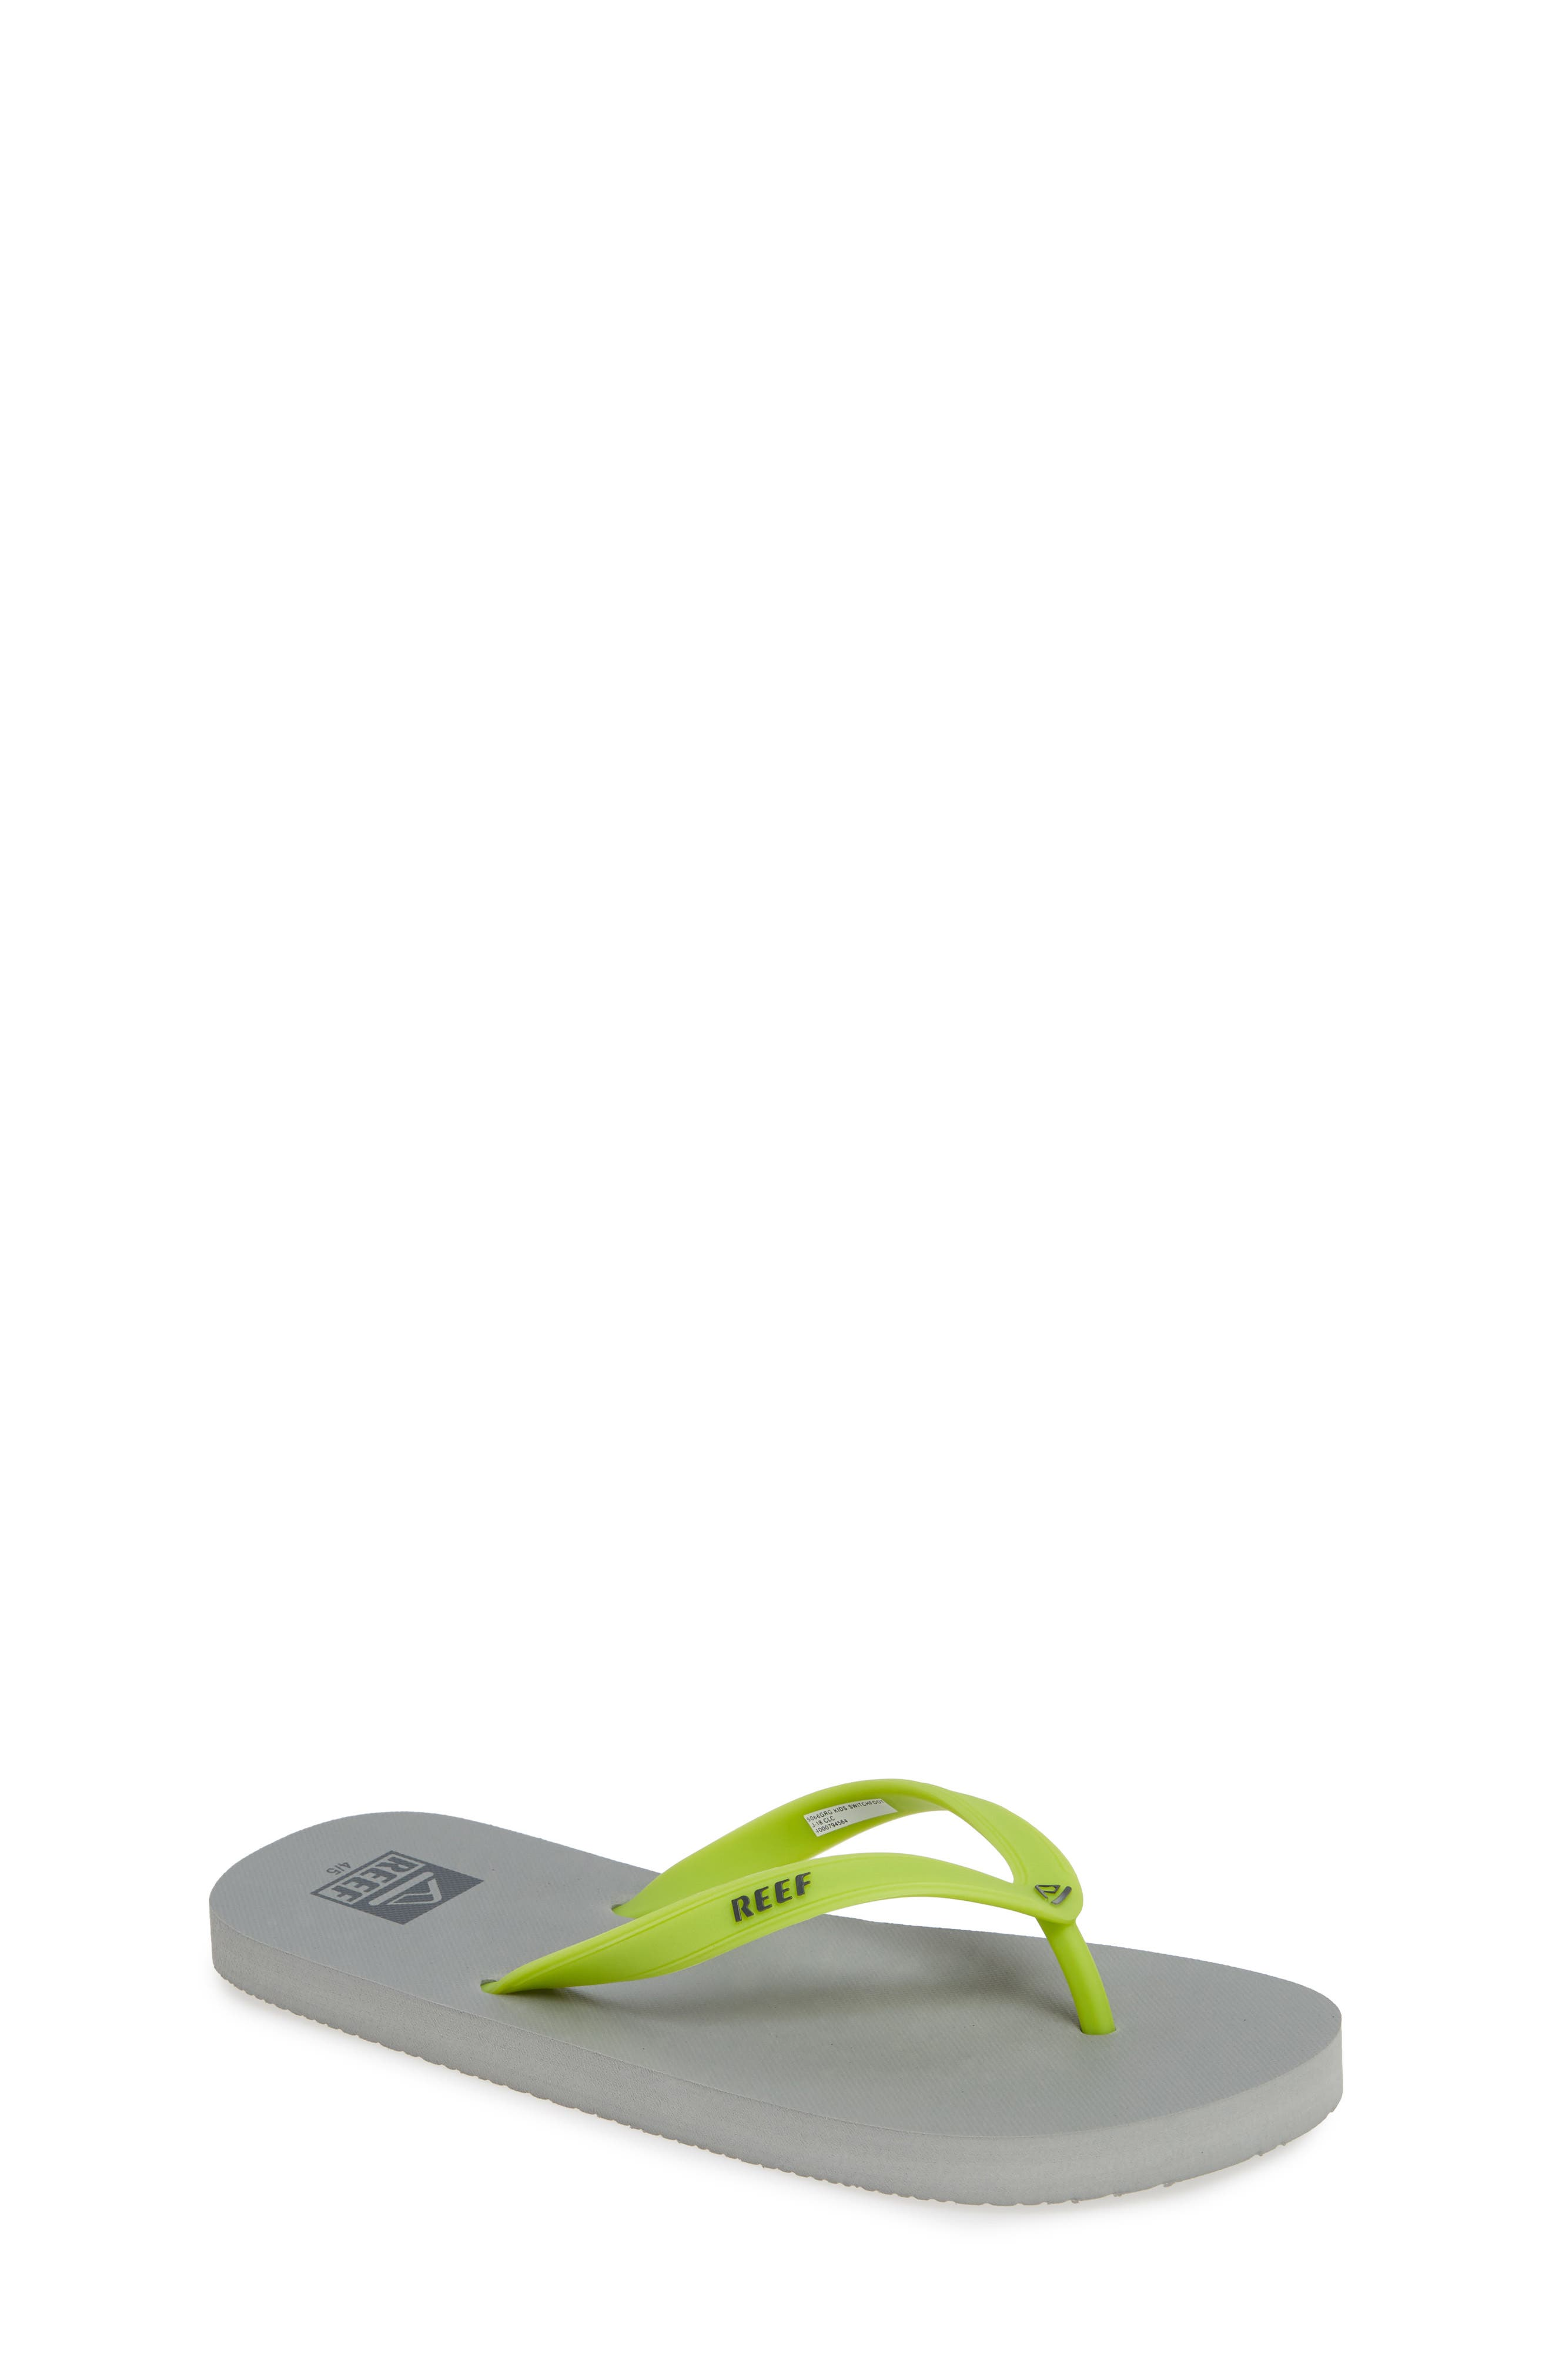 REEF Switchfoot Flip Flop, Main, color, GREY/ GREEN